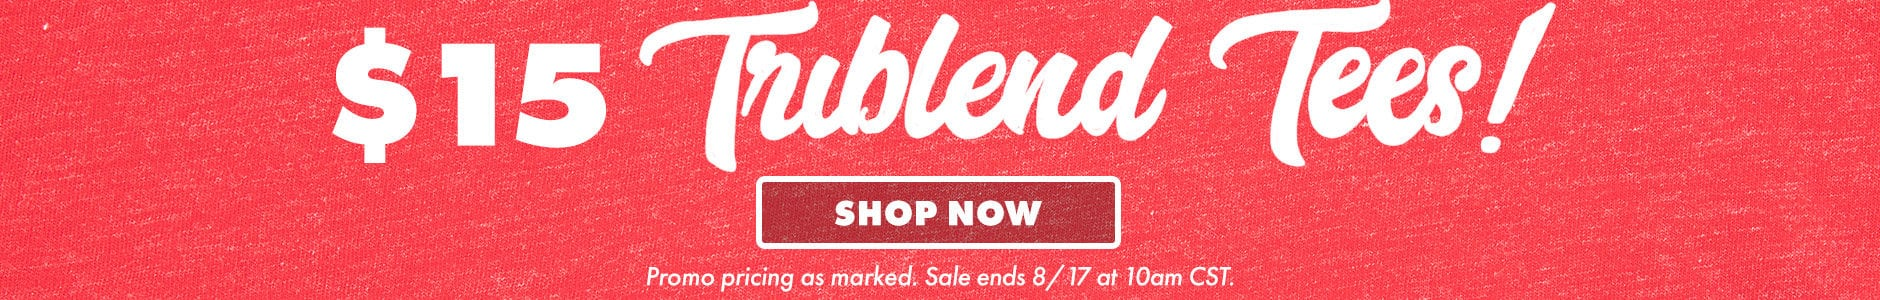 $15 triblend tees! Shop now. Promo pricing as marked. Sale ends 8/17 at 10am CST.